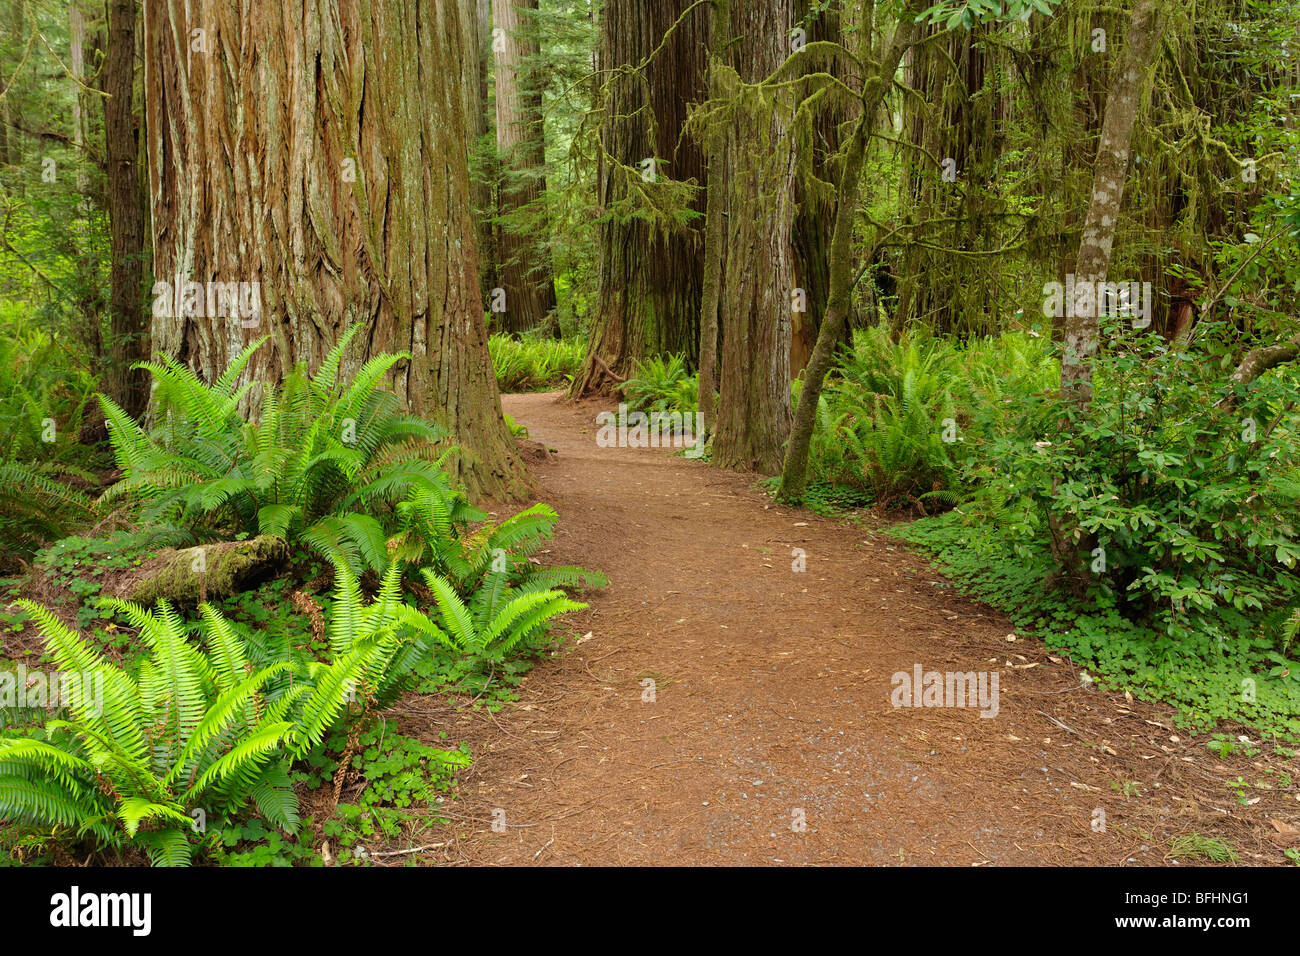 Old forest road running through the towering redwood trees of Del Norte Coast Redwoods State Park - Stock Image